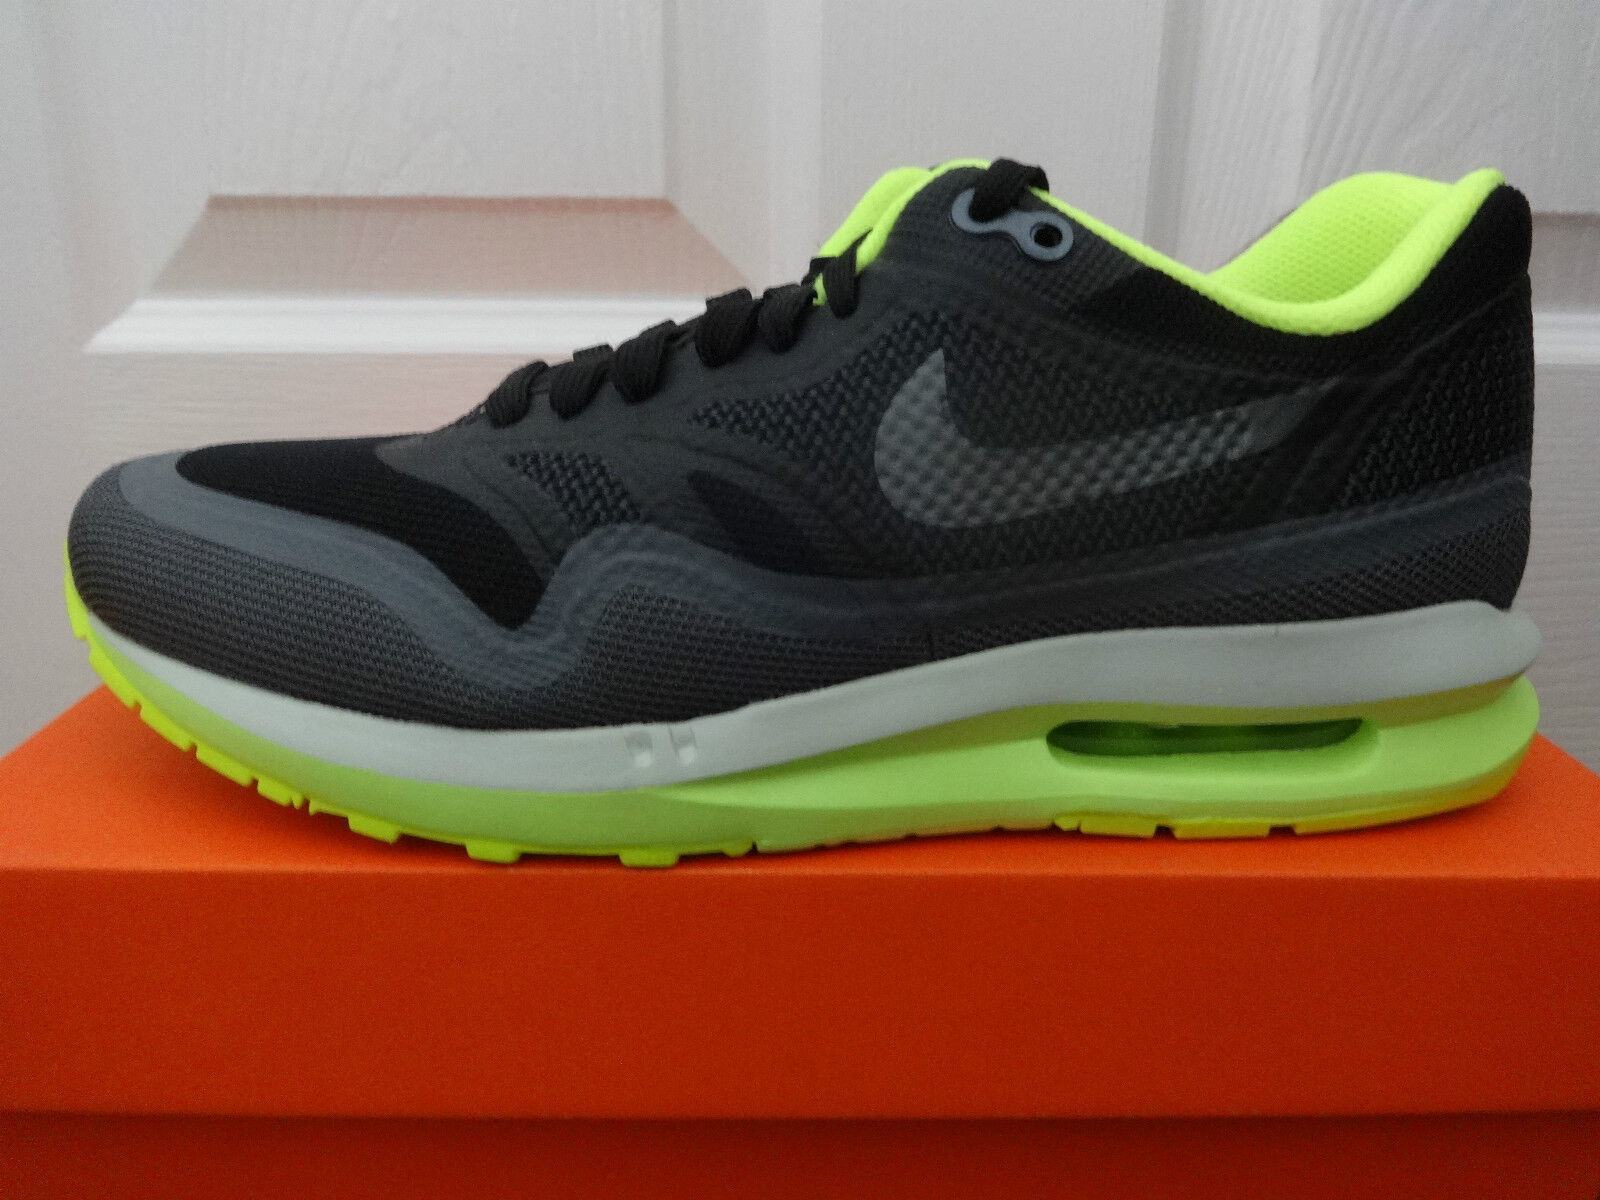 Nike Air Max Lunar 1 Femme trainers 654937 002 uk 5.5 eu 39 us 8 NEW